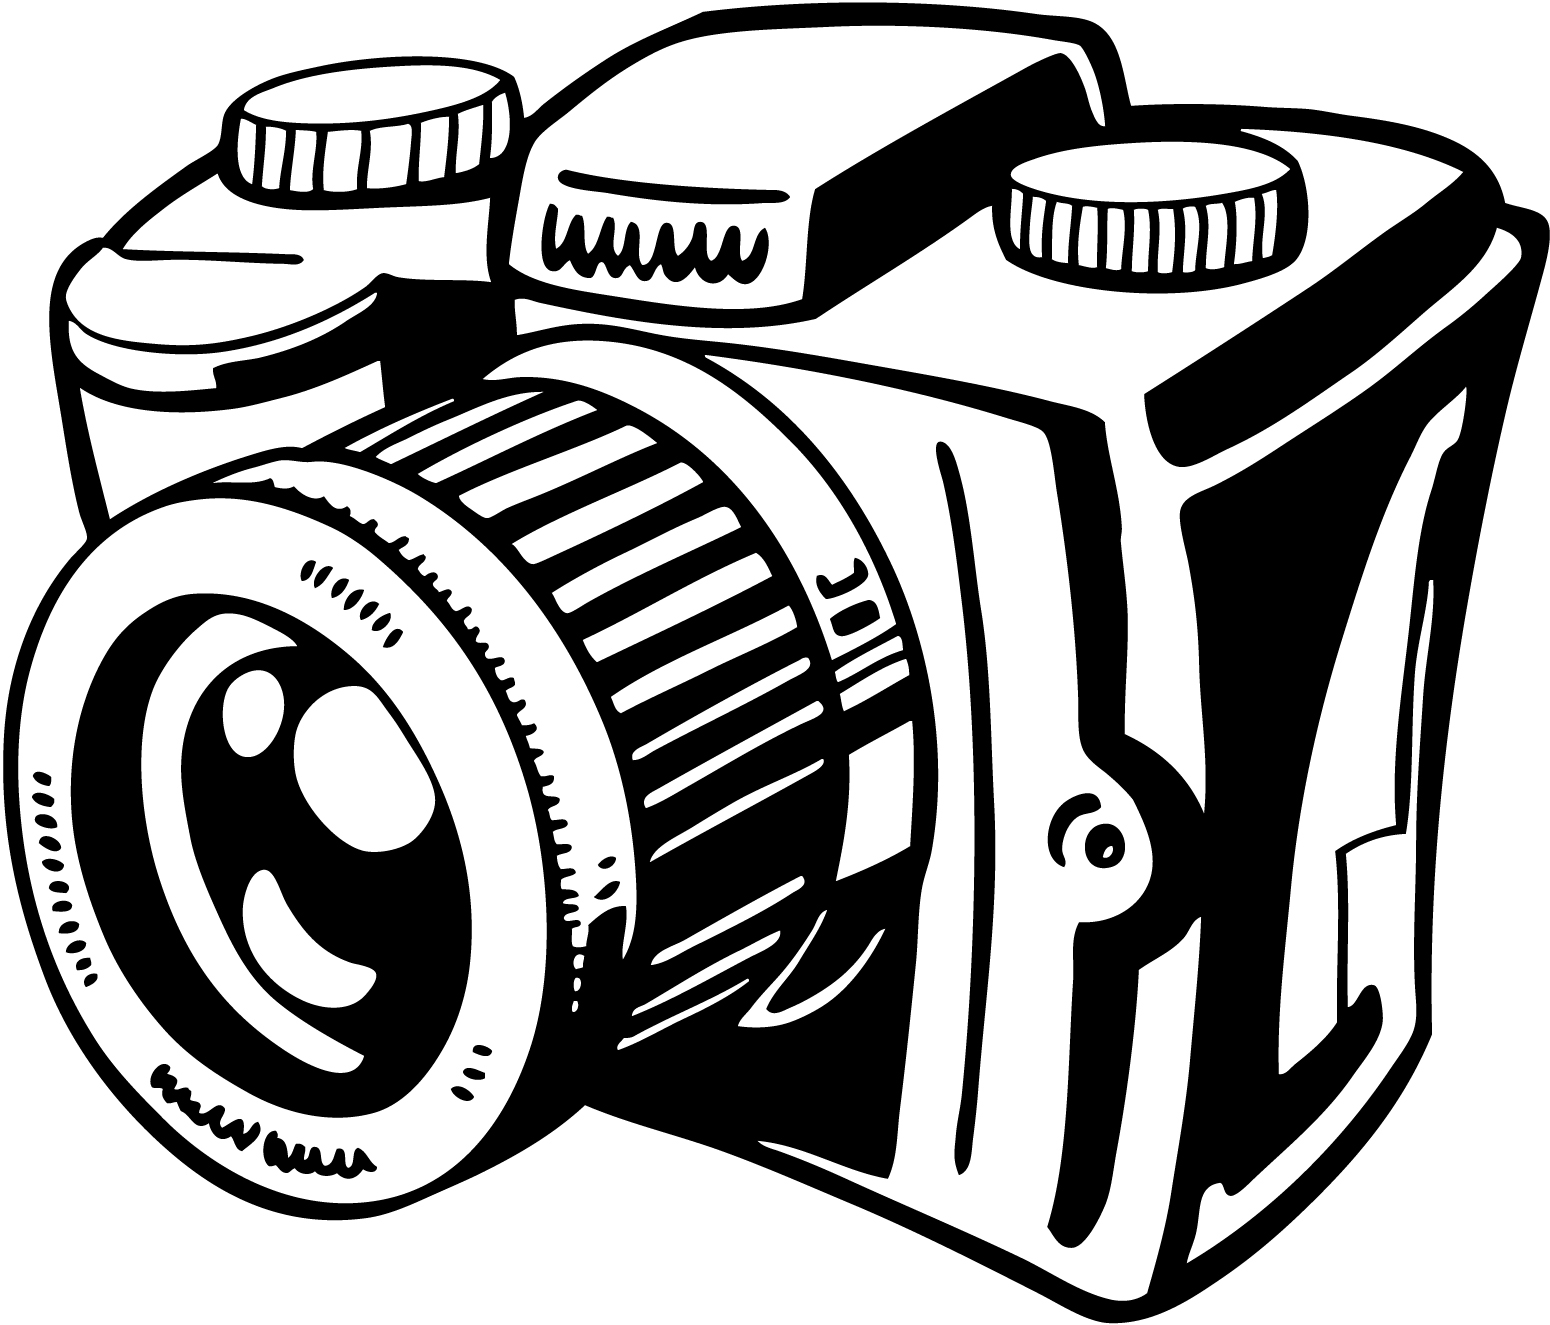 Camera clip art vector clip clipart cliparts for you - Cliparting clipartall.com